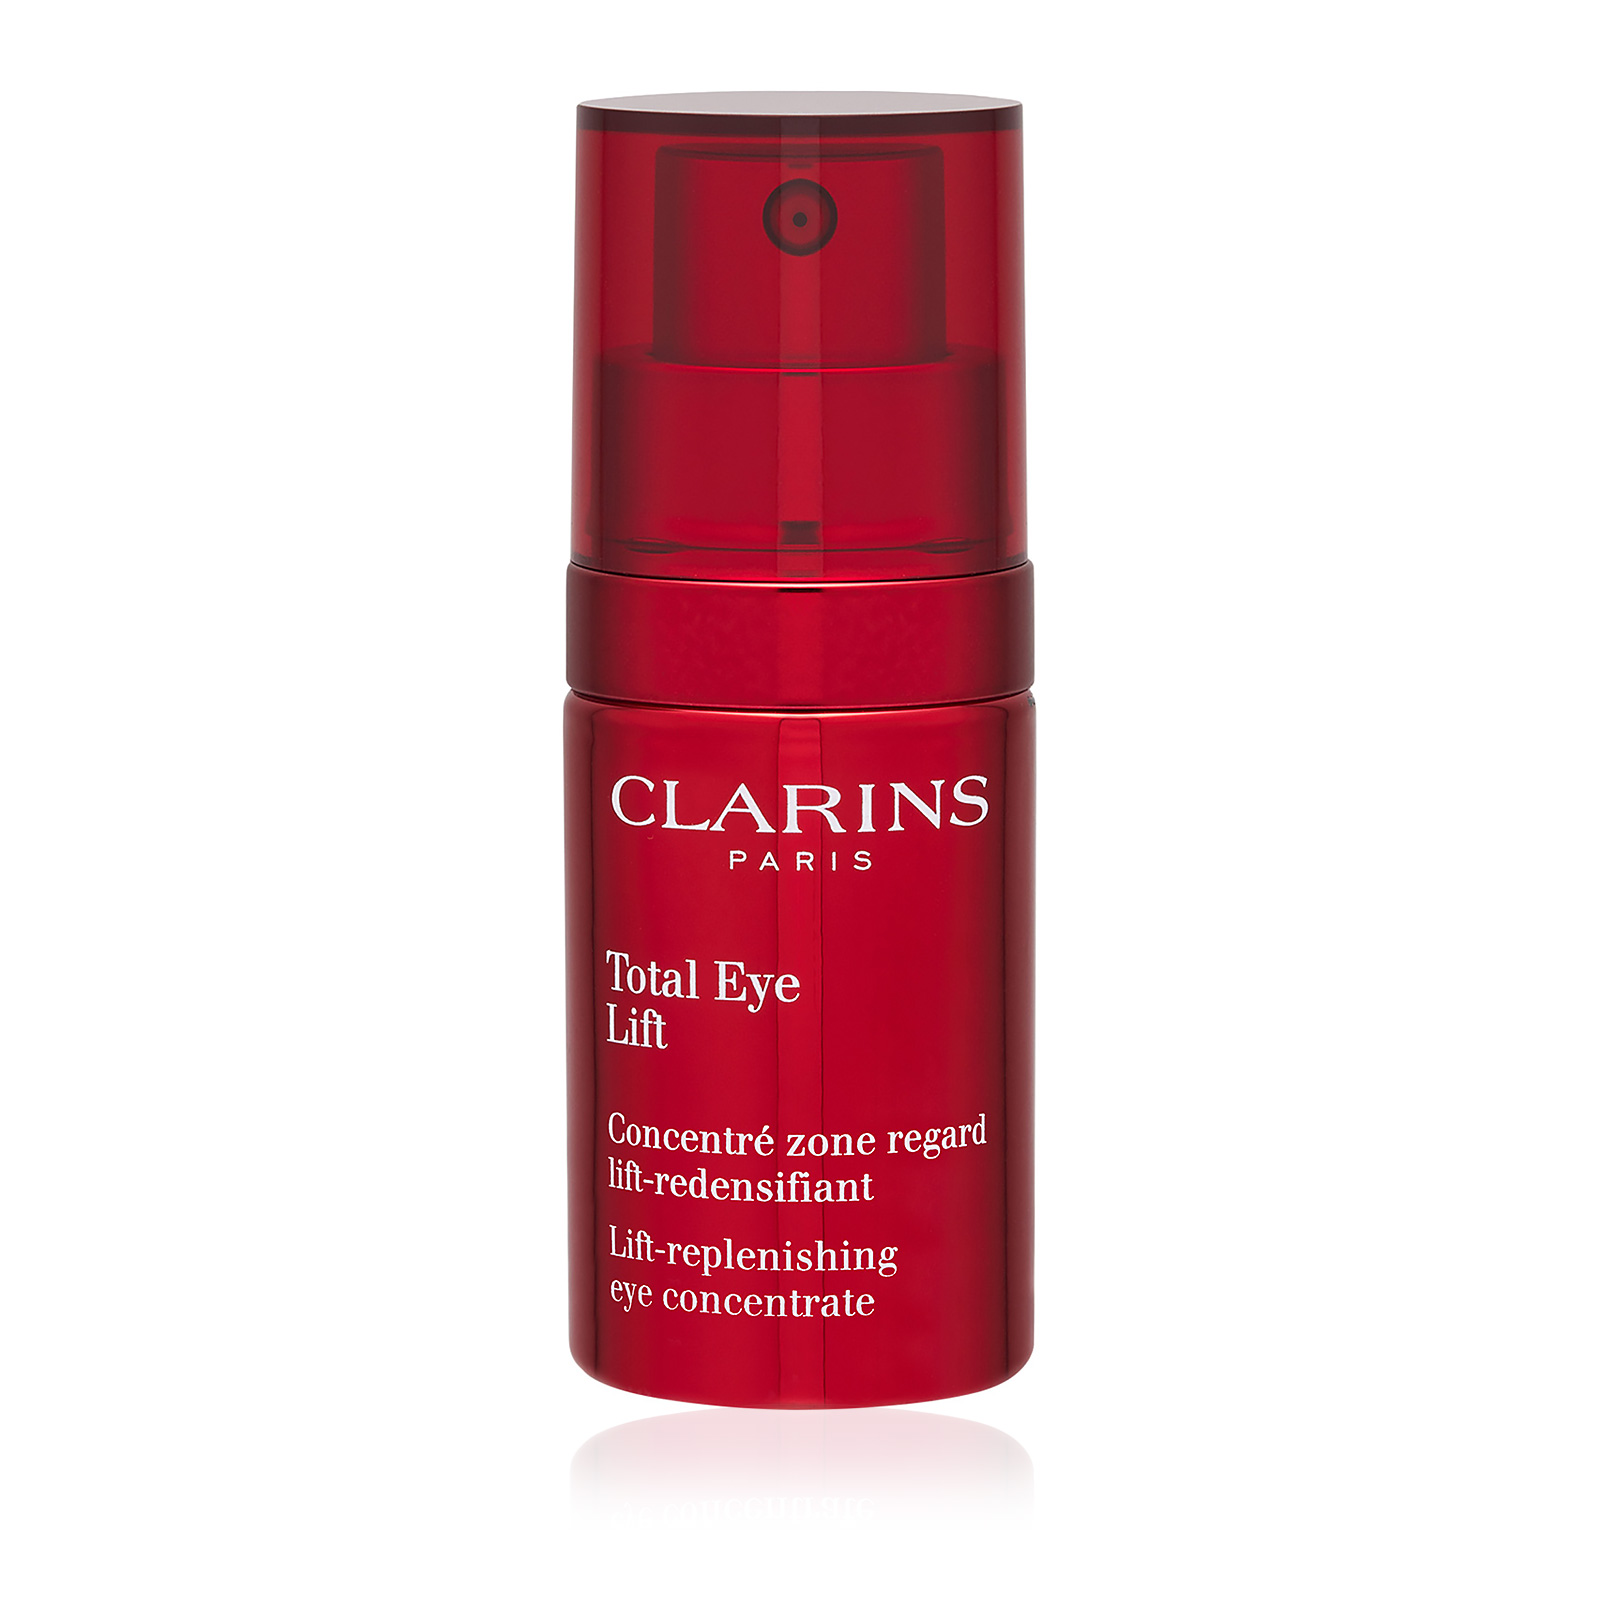 Total Eye Lift Lift-Replenishing Total Eye Concentrate